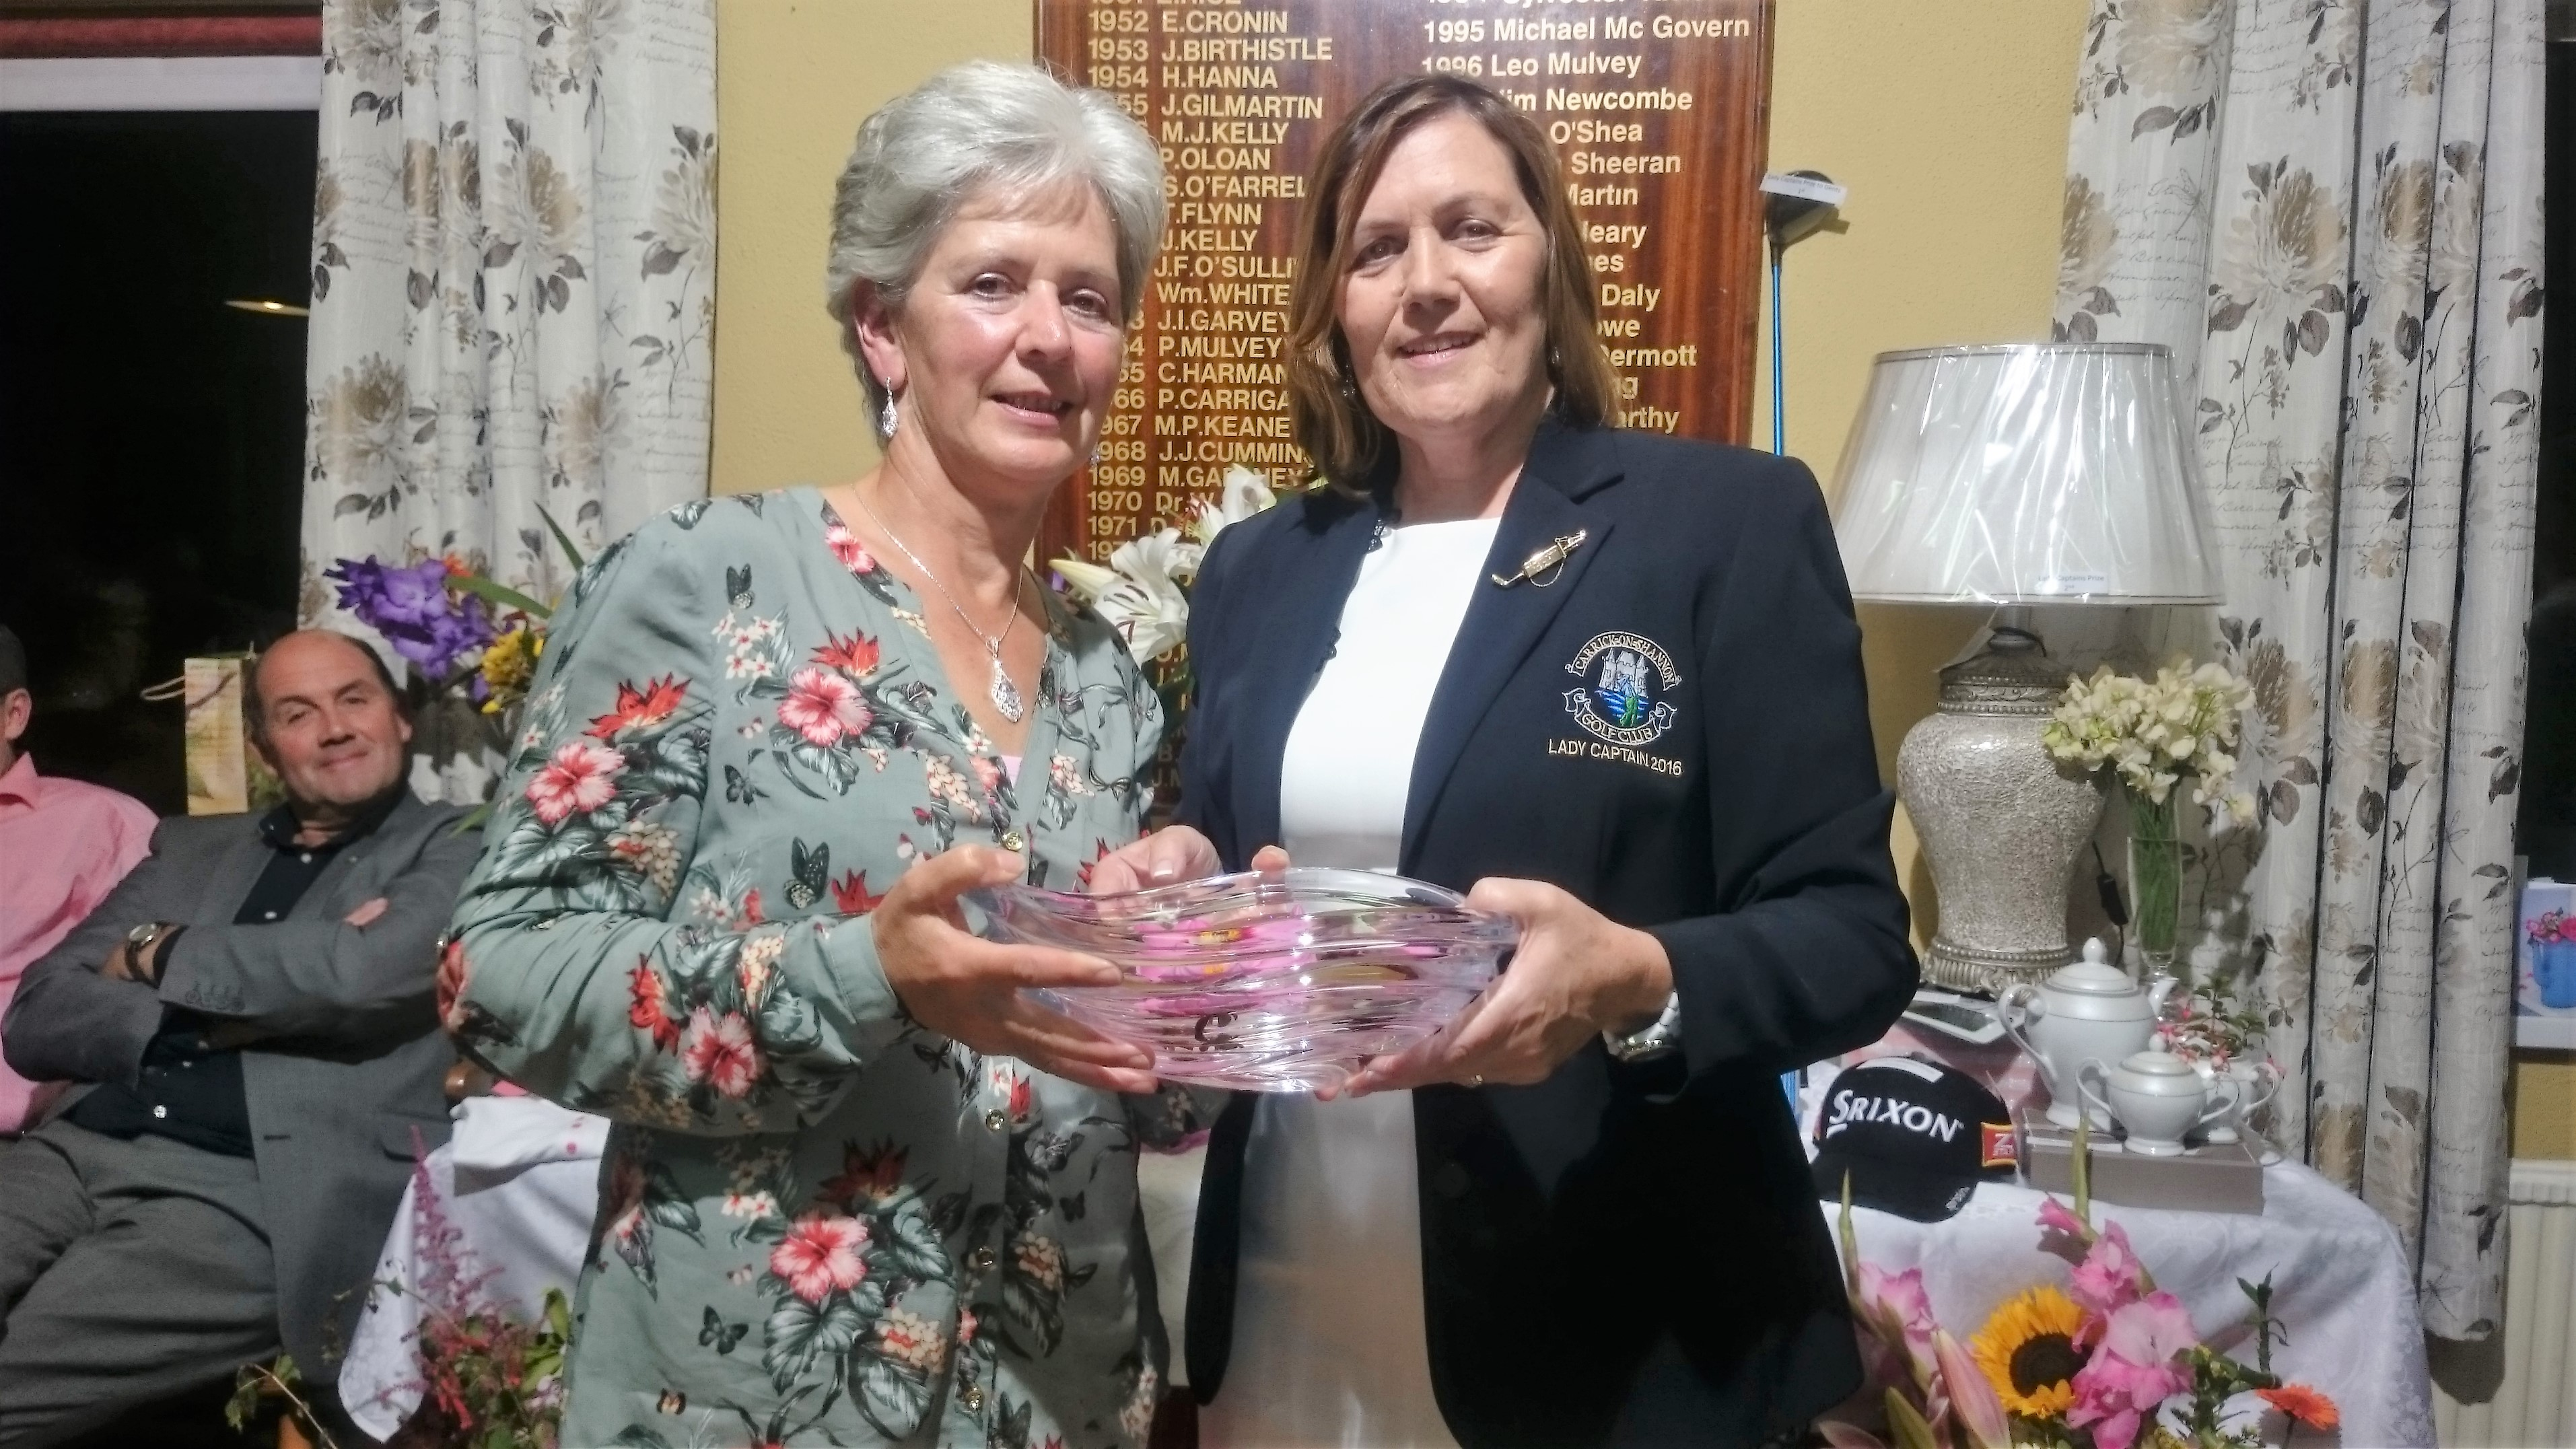 LADY CAPTAINS DAY: Phil McWeeney(Gross), Lady Captain Noeleen Moffatt